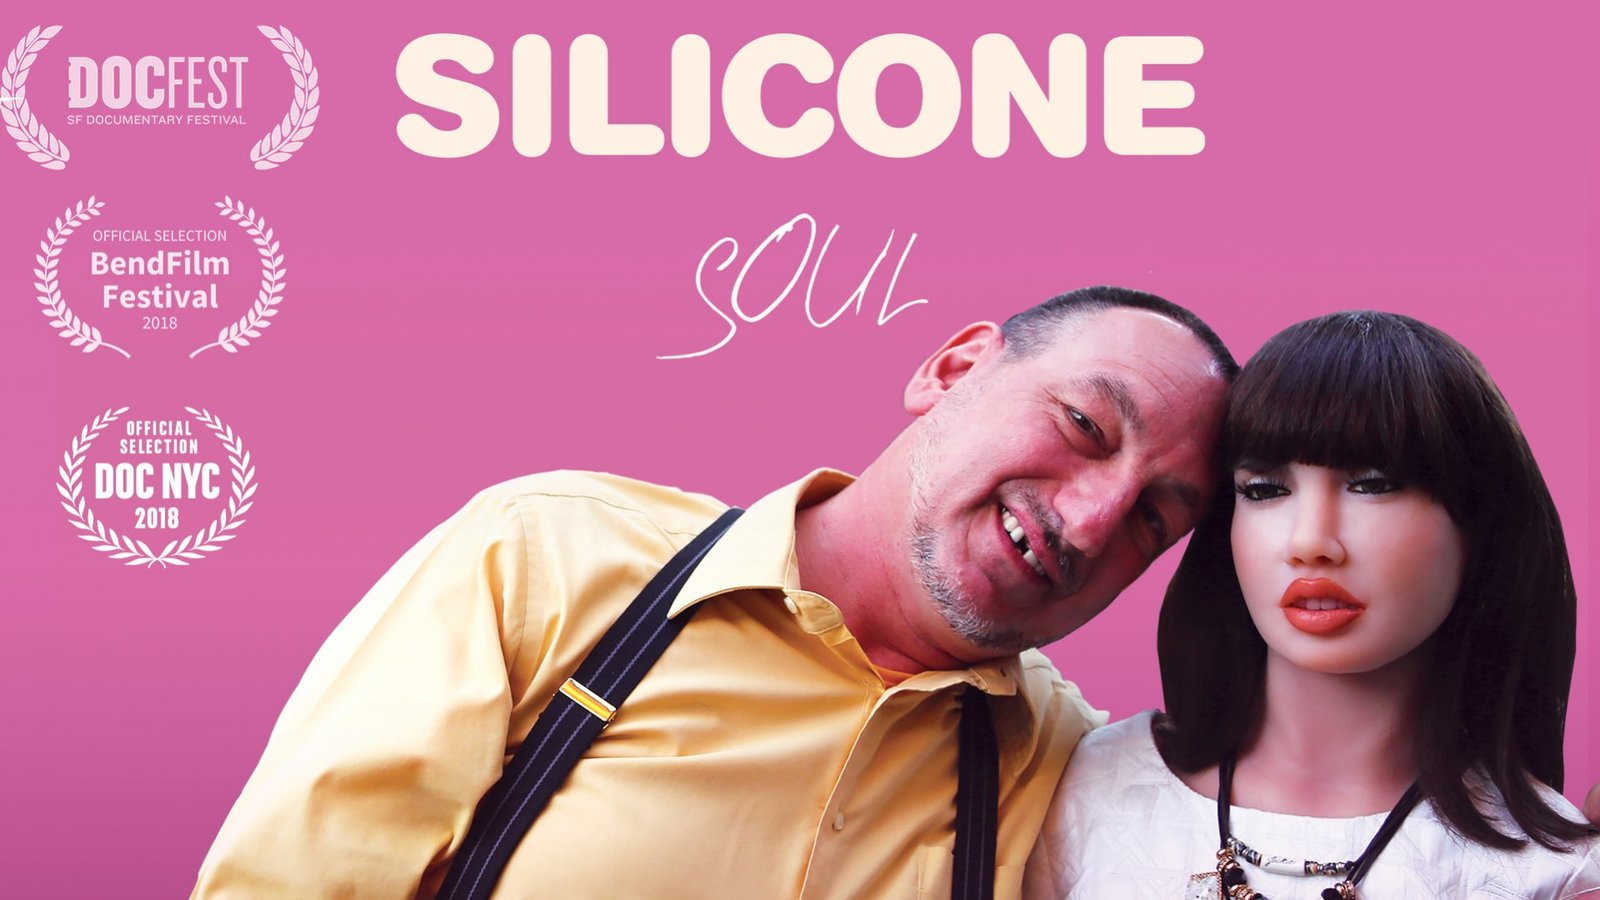 Silicone Soul - People who Have Relationships with Synthetic Companions